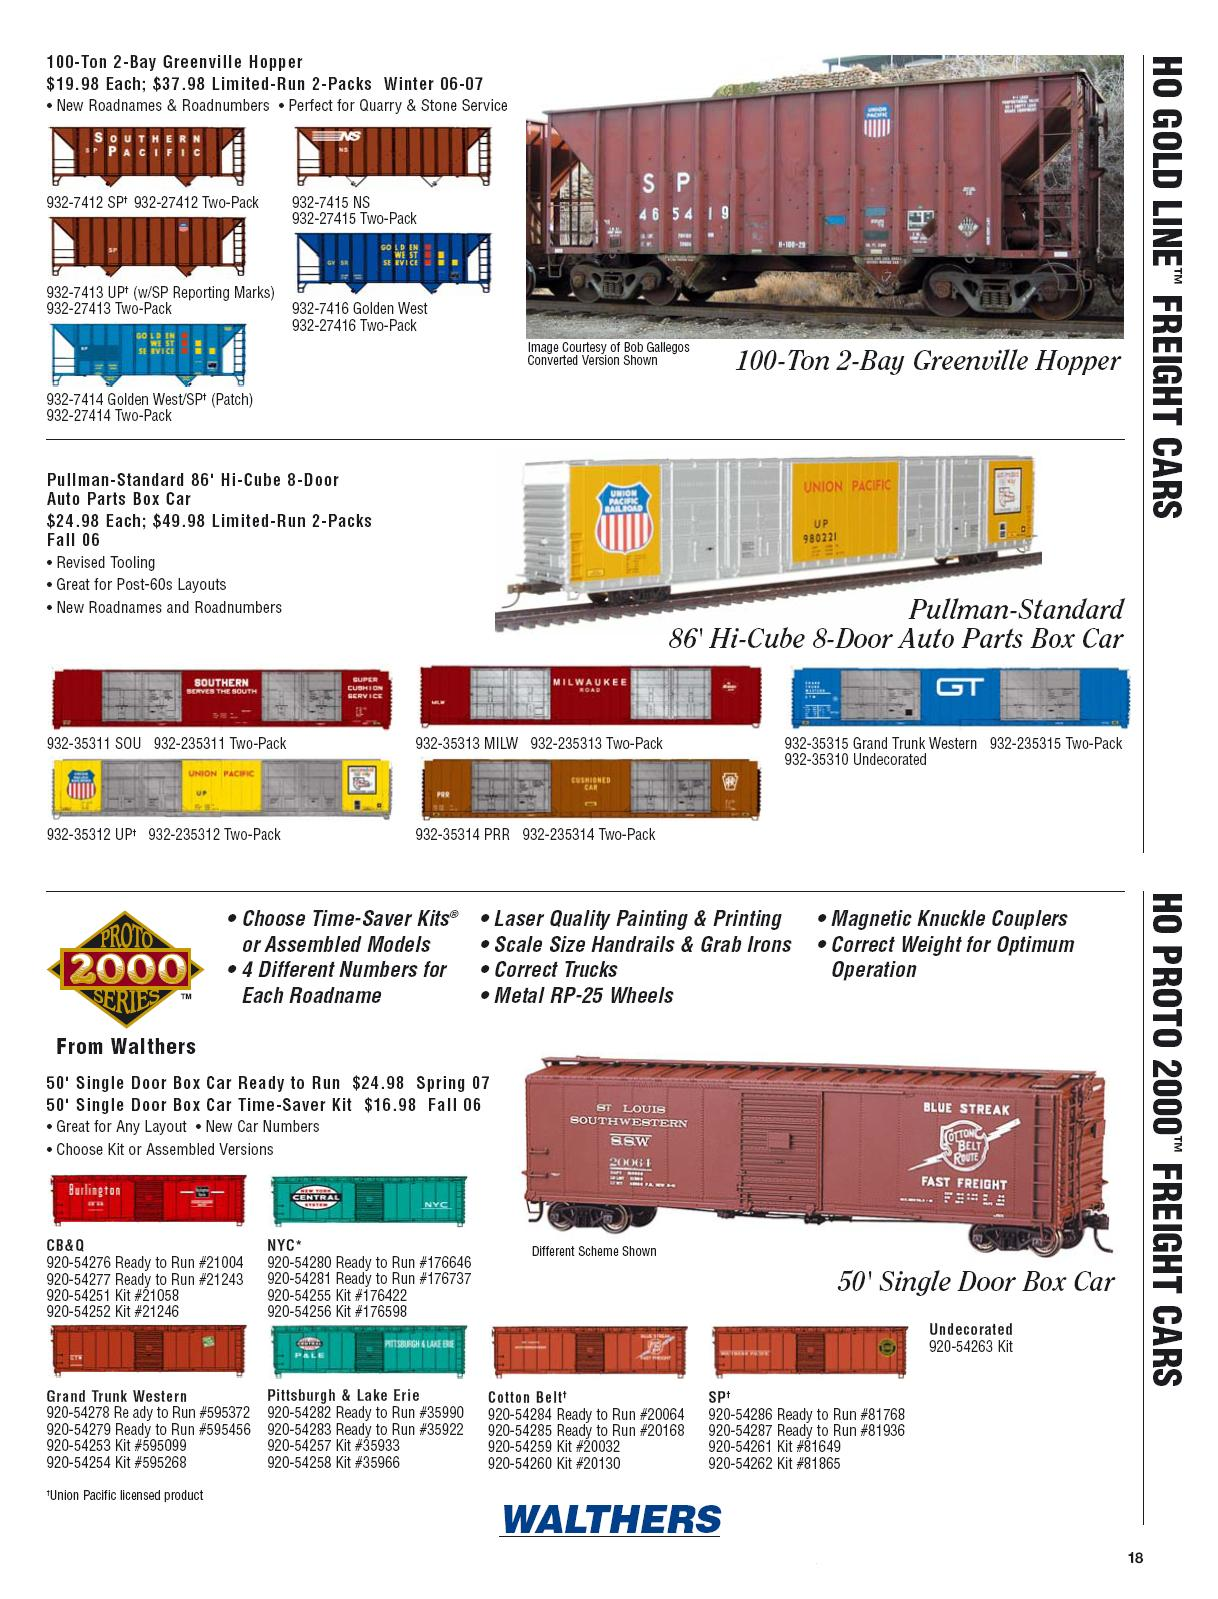 Walthers 2006 Cataloge Passenger page 10